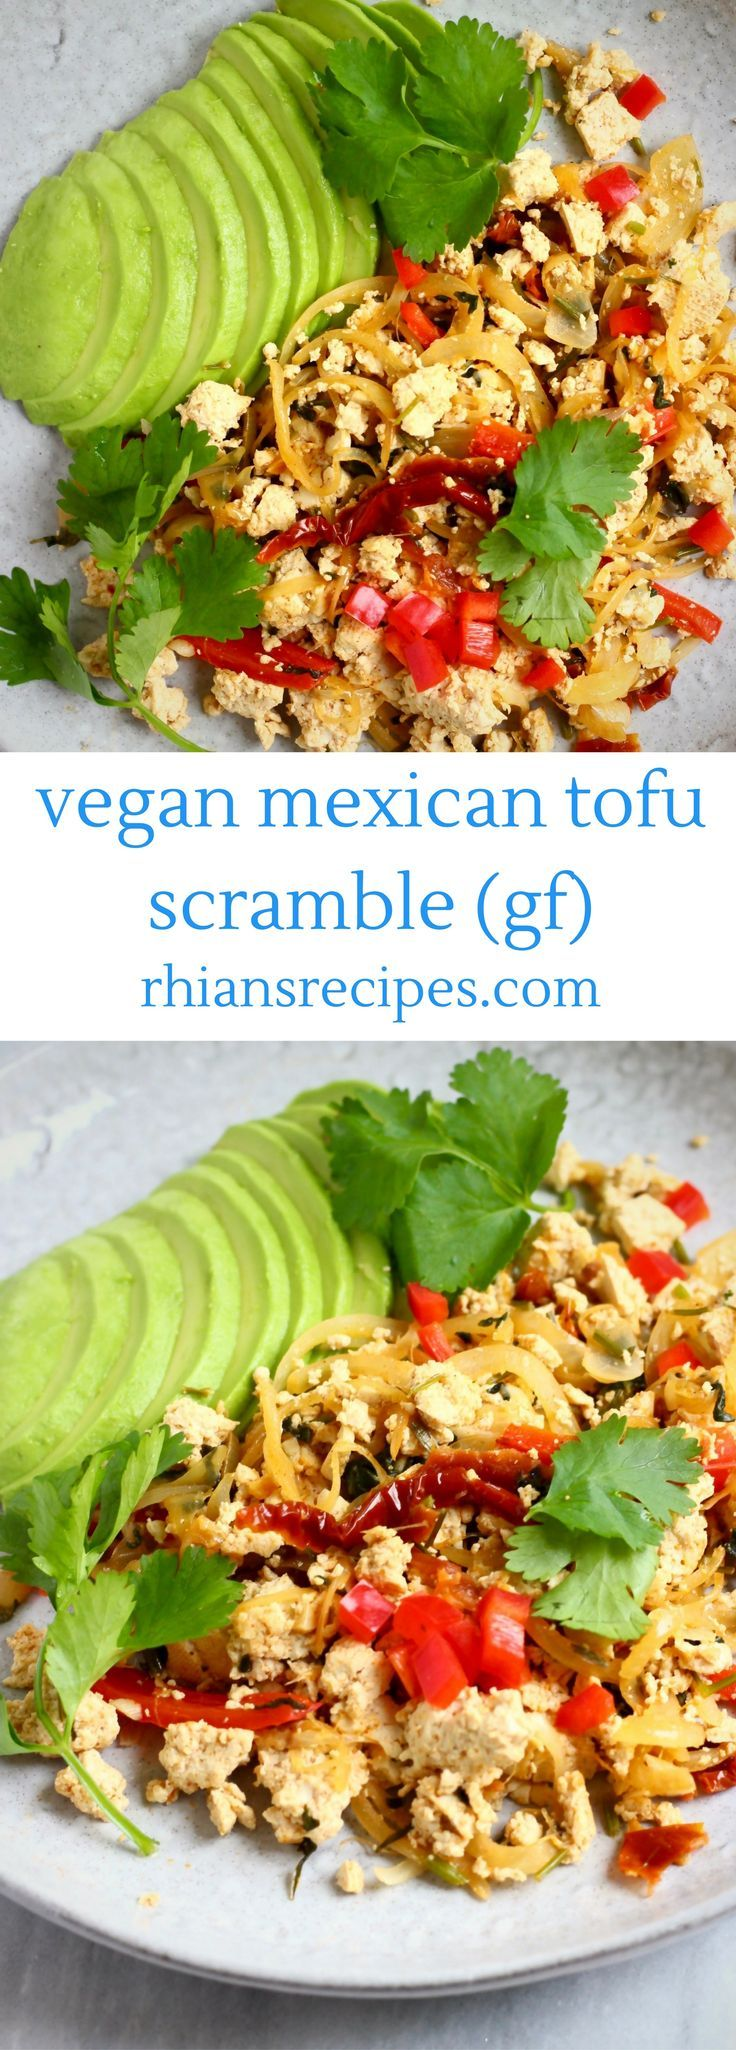 This Vegan Mexican Tofu Scramble is full of flavour, super easy to make and hearty and satisfying! Eat as breakfast or brunch, or use as a filling for burritos, enchiladas or tacos. Gluten-free.